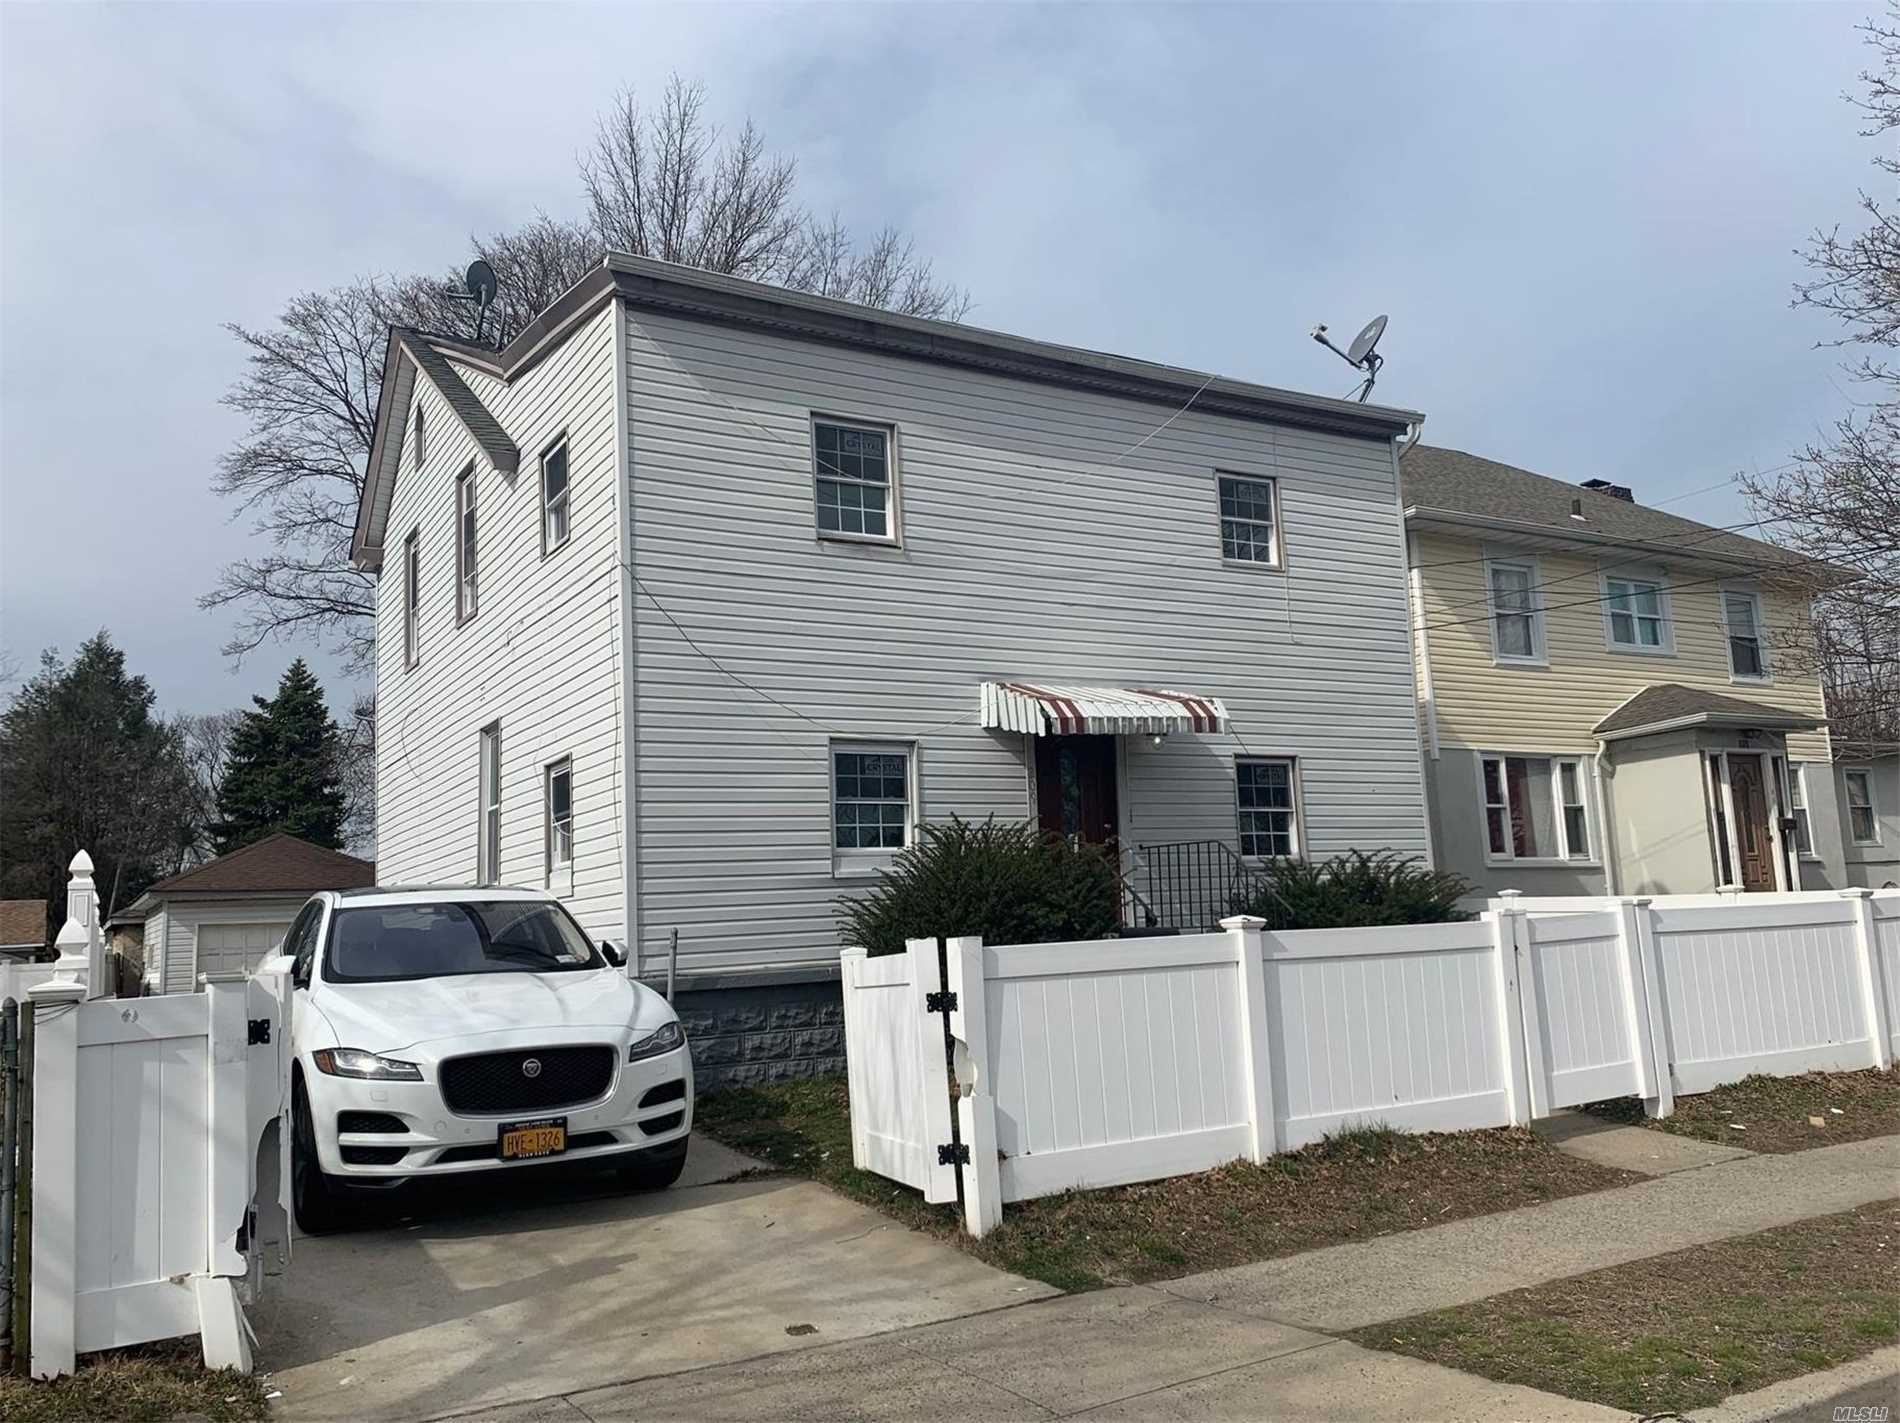 209 Washington Street, Hempstead, NY 11550 - MLS#: 3207325